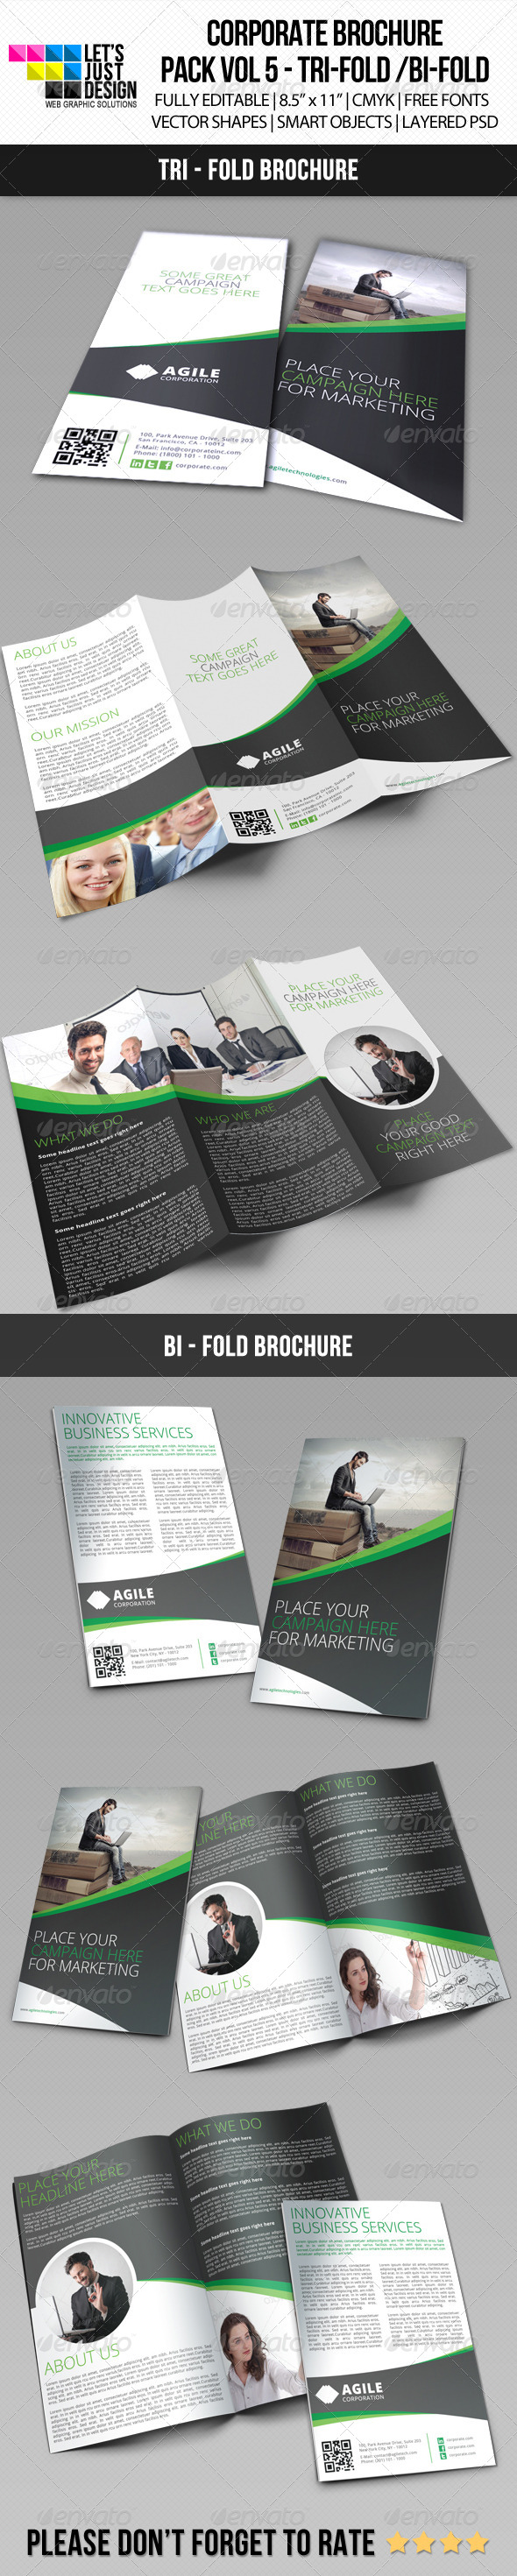 GraphicRiver Creative Corporate Brochure Bundle Vol 6 7281252